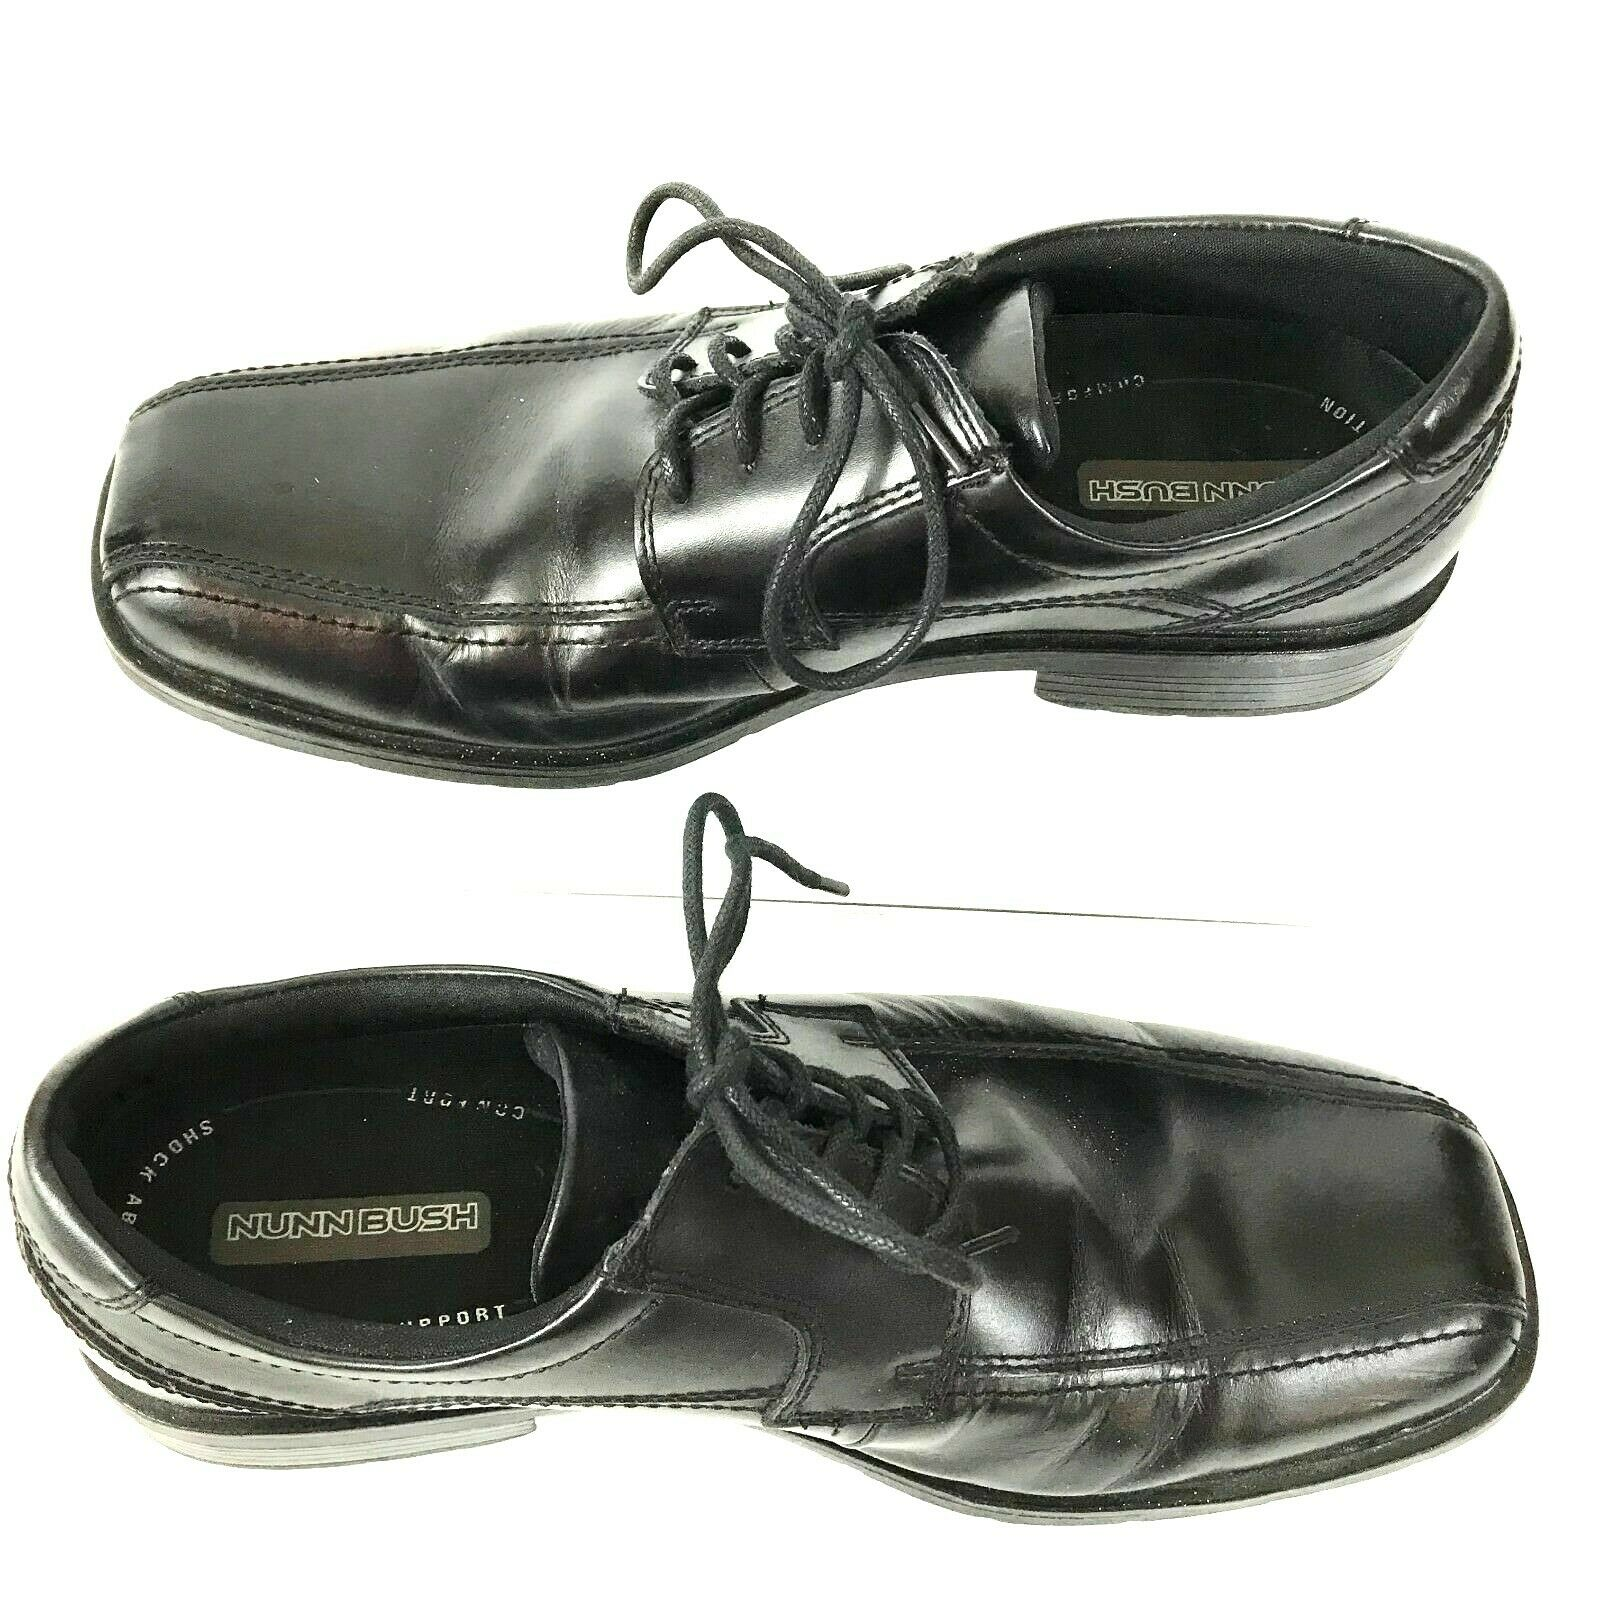 Mens Nunn Bush Leather Oxford Size 10 M Comfort Support Shock Absorption Black